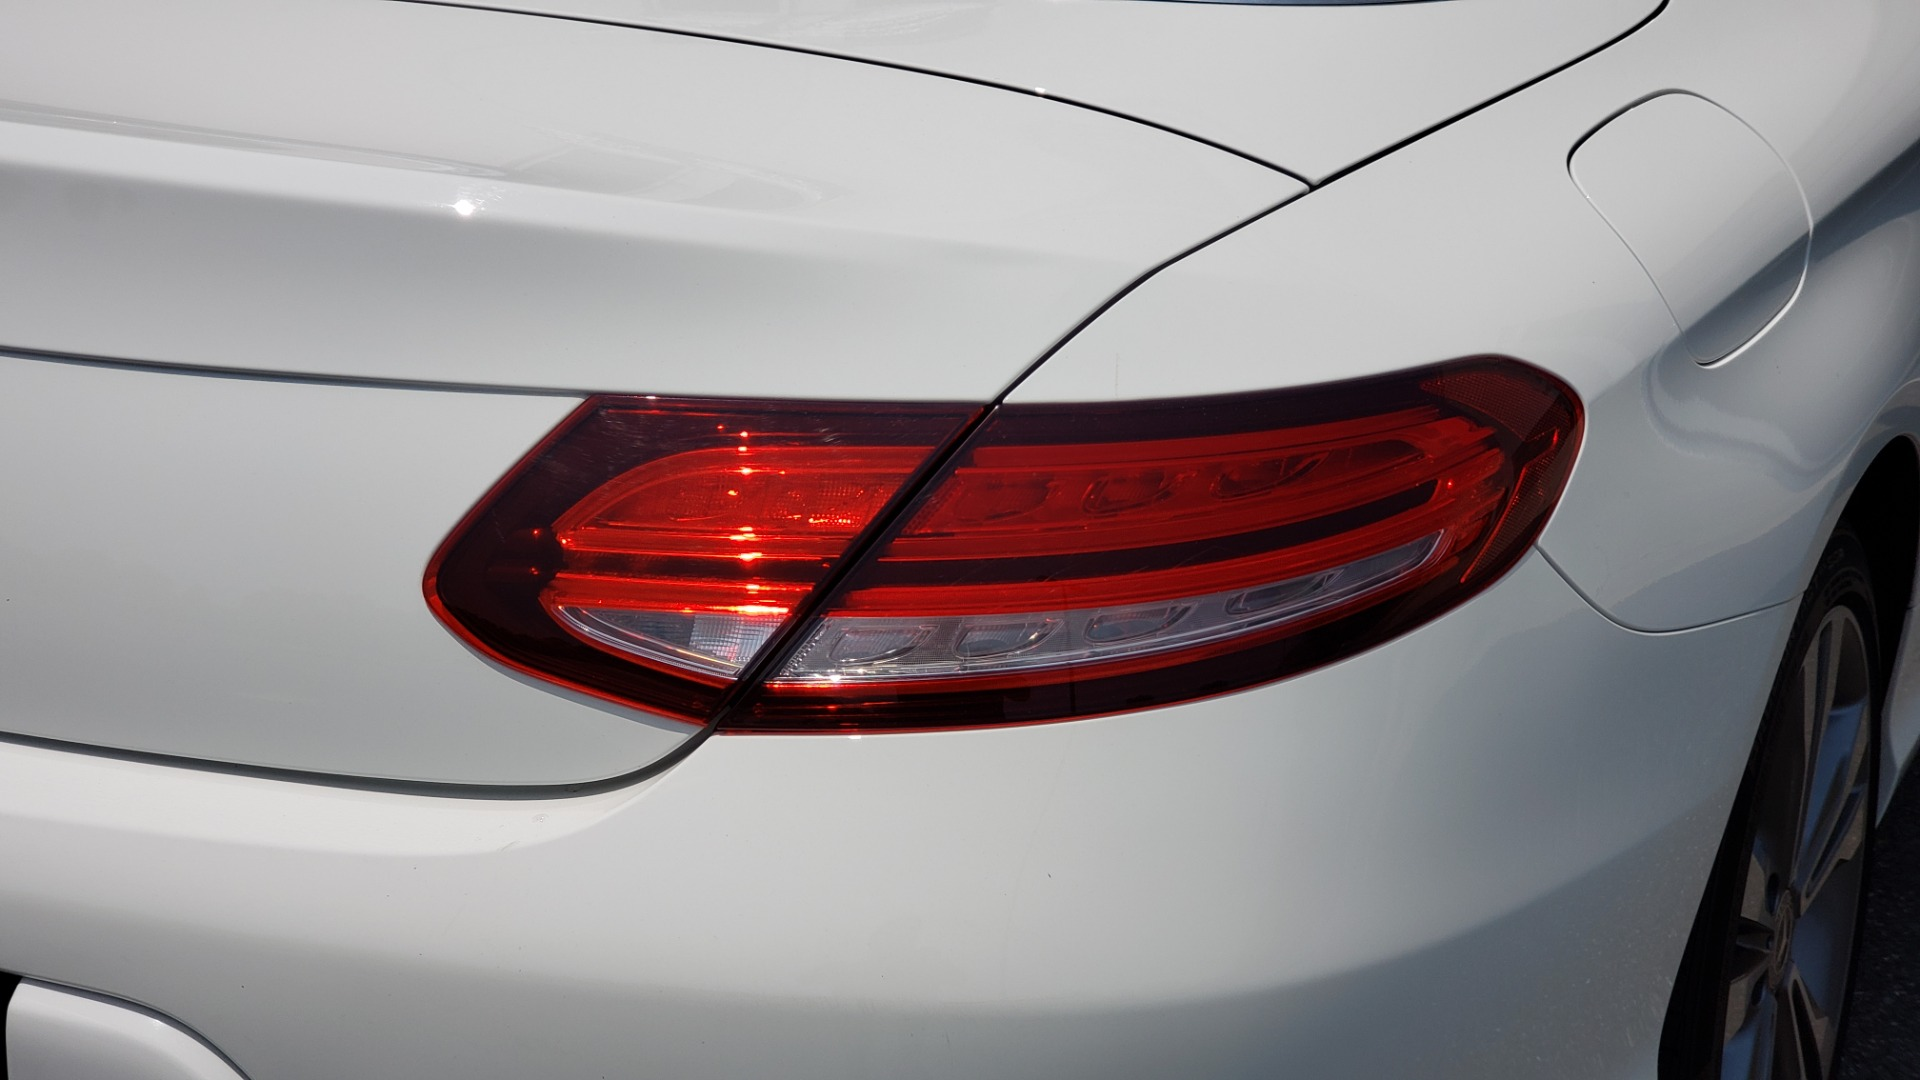 Used 2019 Mercedes-Benz C-CLASS C 300 CABRIOLET 2.0L / AUTO / NAV / HD RADIO / REARVIEW for sale $46,995 at Formula Imports in Charlotte NC 28227 32